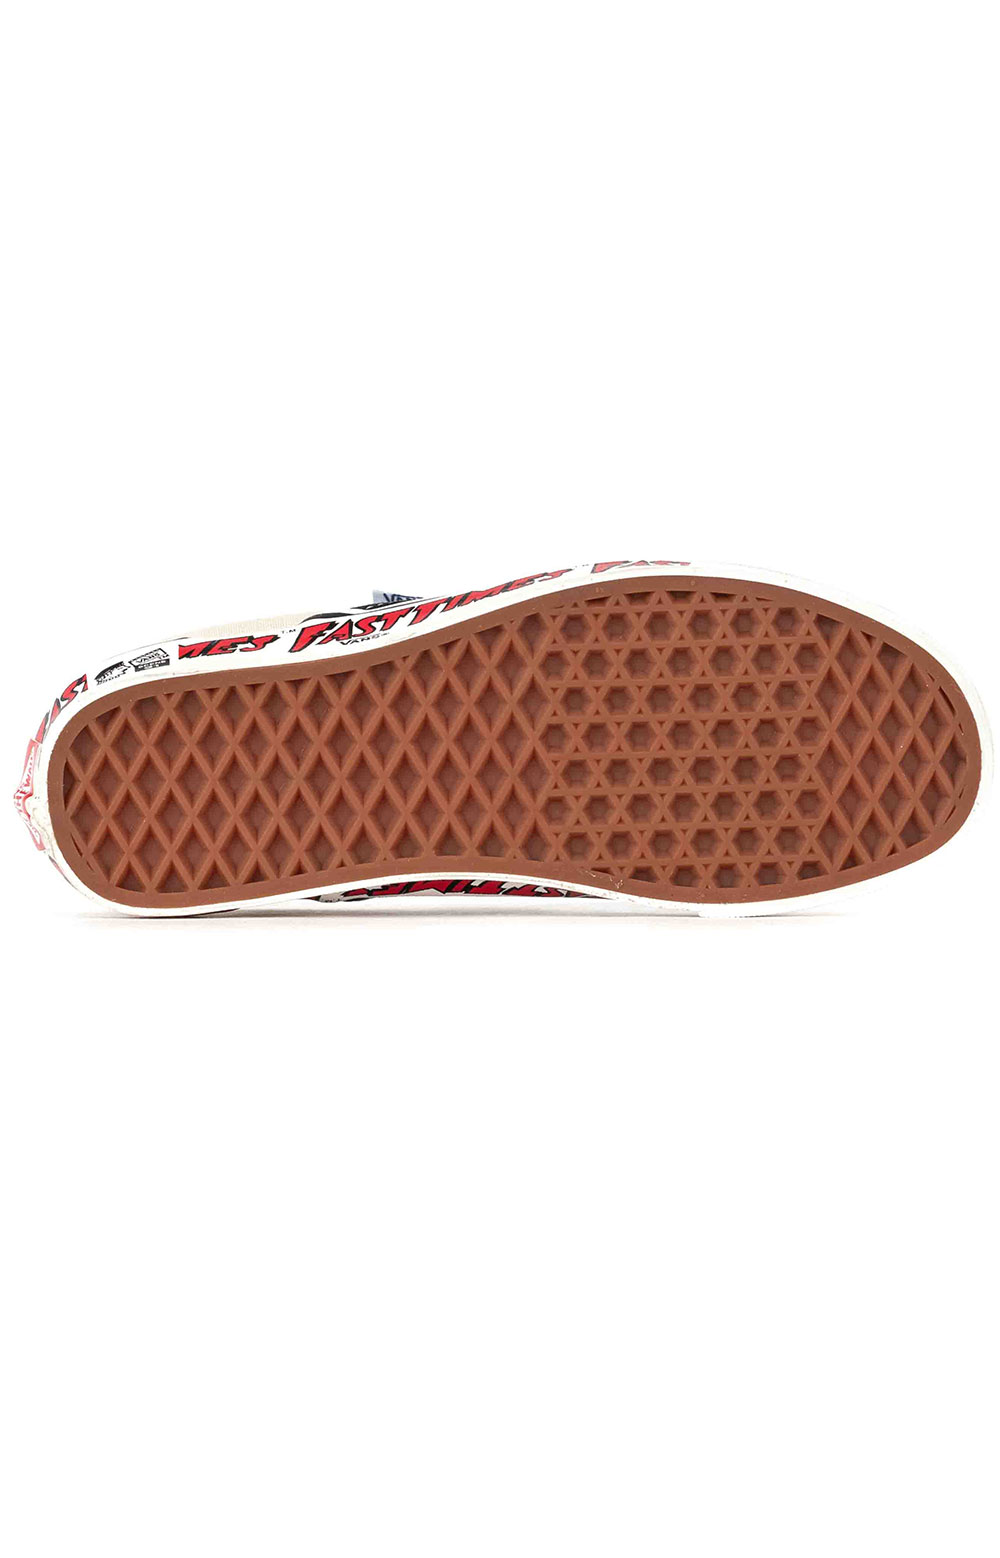 (JEXWVP) Anaheim Factory Classic Slip-On 98 DX Shoes - OG Fast Times  6